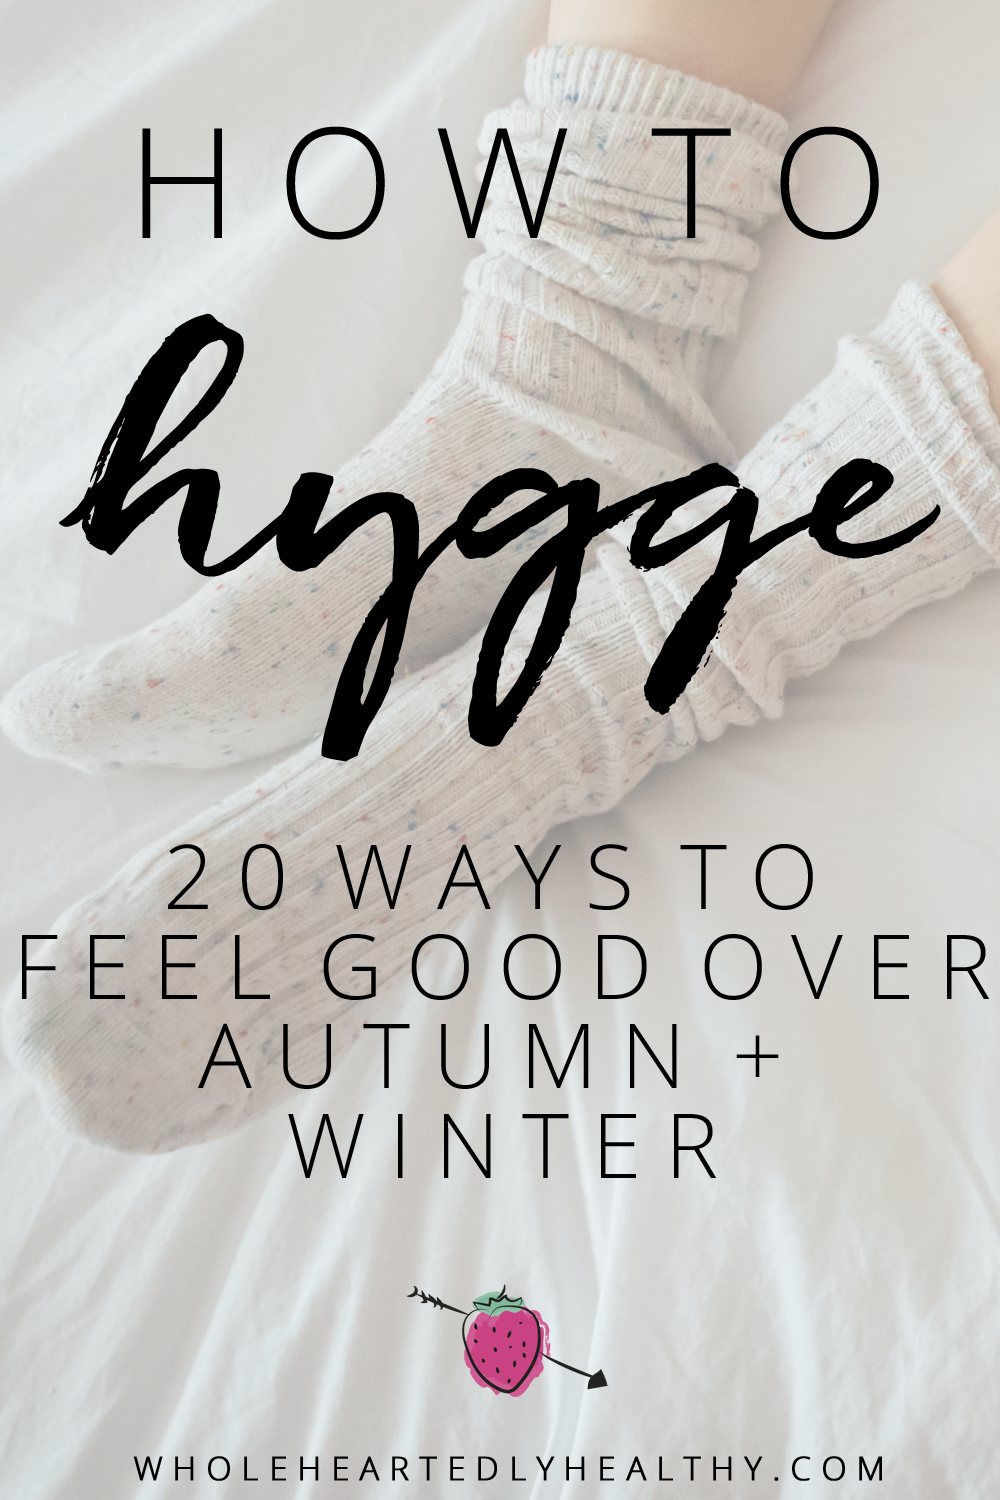 How to Hygge: 20 ways to feel good over autumn and winter ...